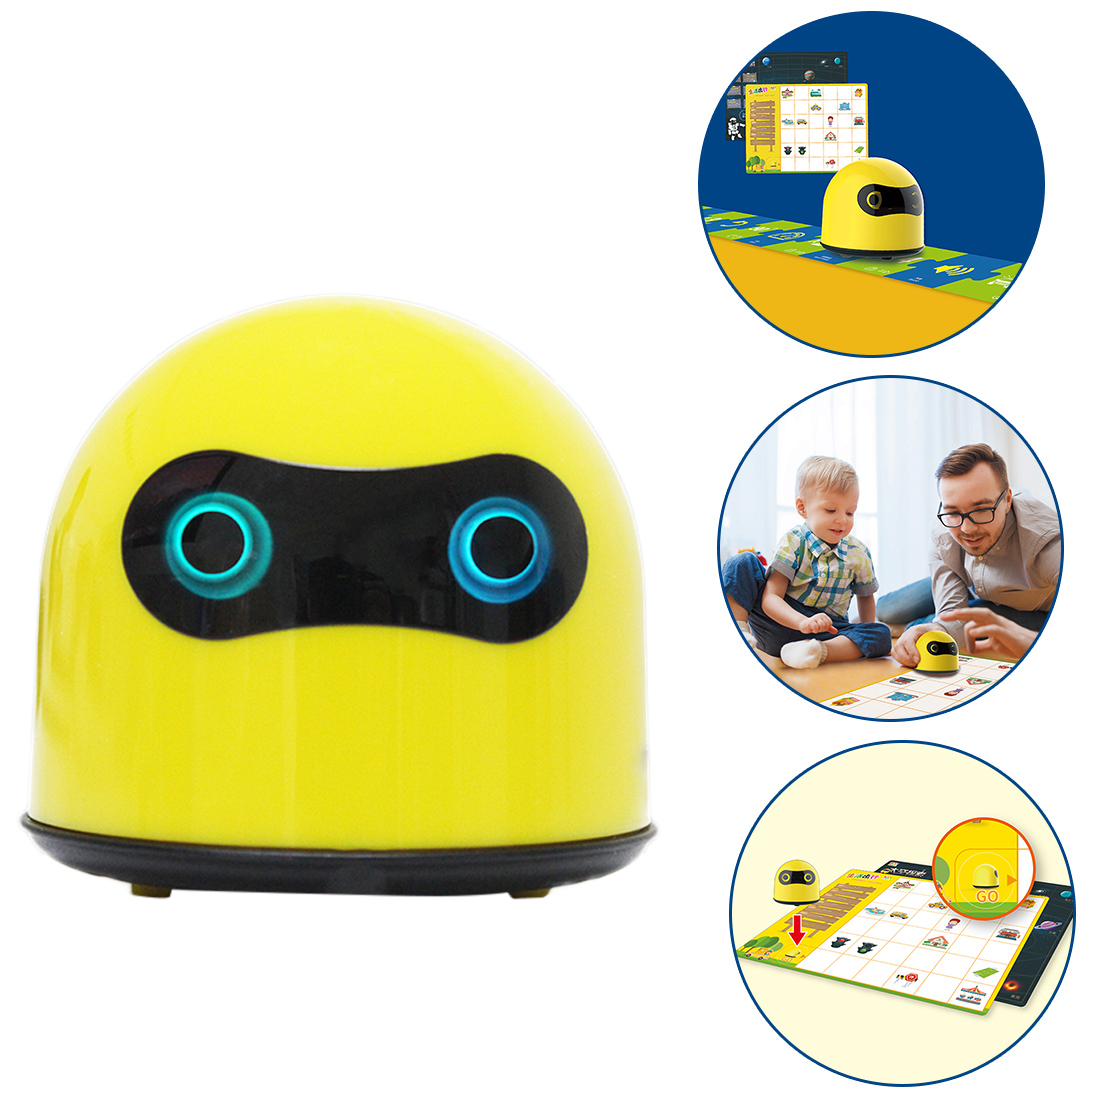 Programmed Robot Car Kit Steam Early Education Learning Ai Programming Toy Children Play Game Education Christmas Birthday Gift